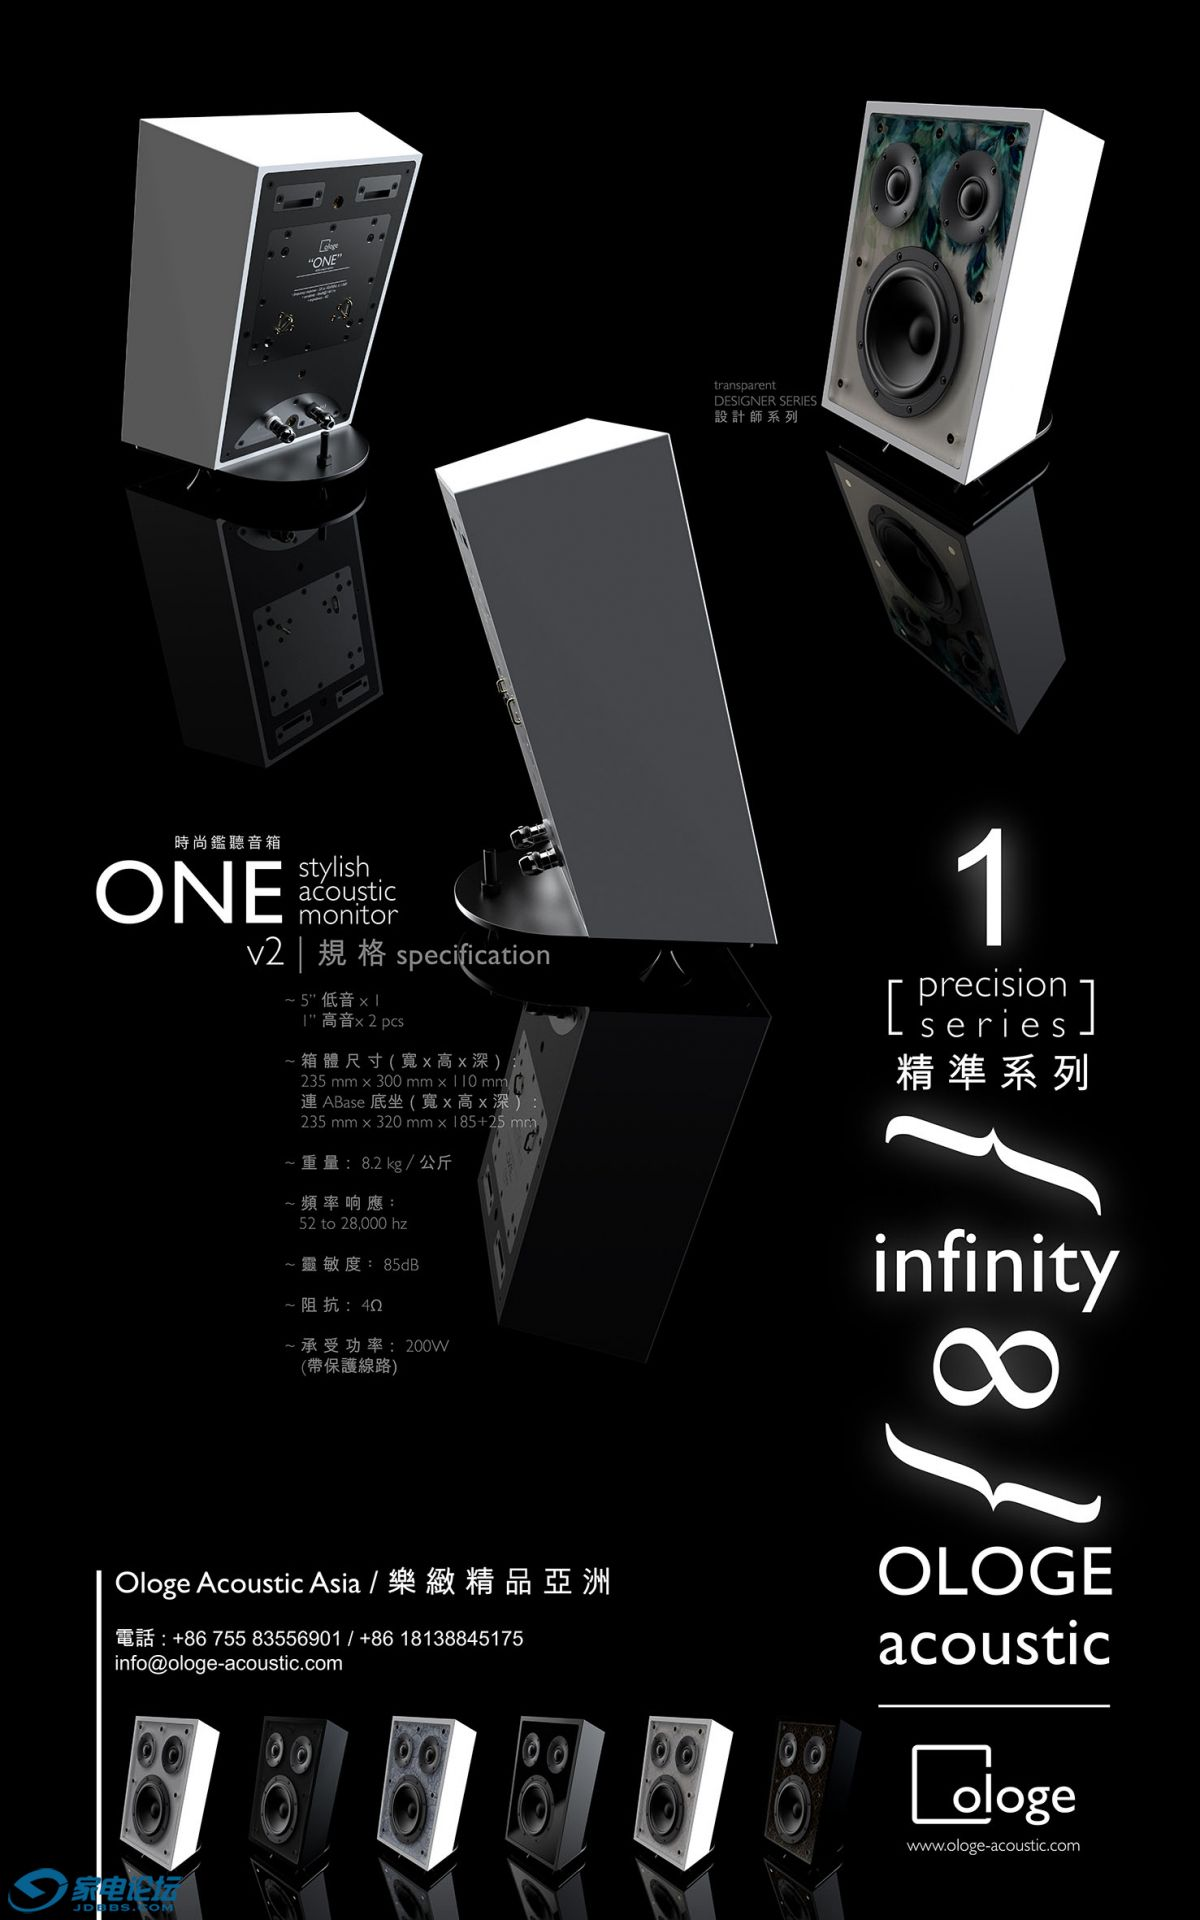 infinity layout - chinese-8.jpg